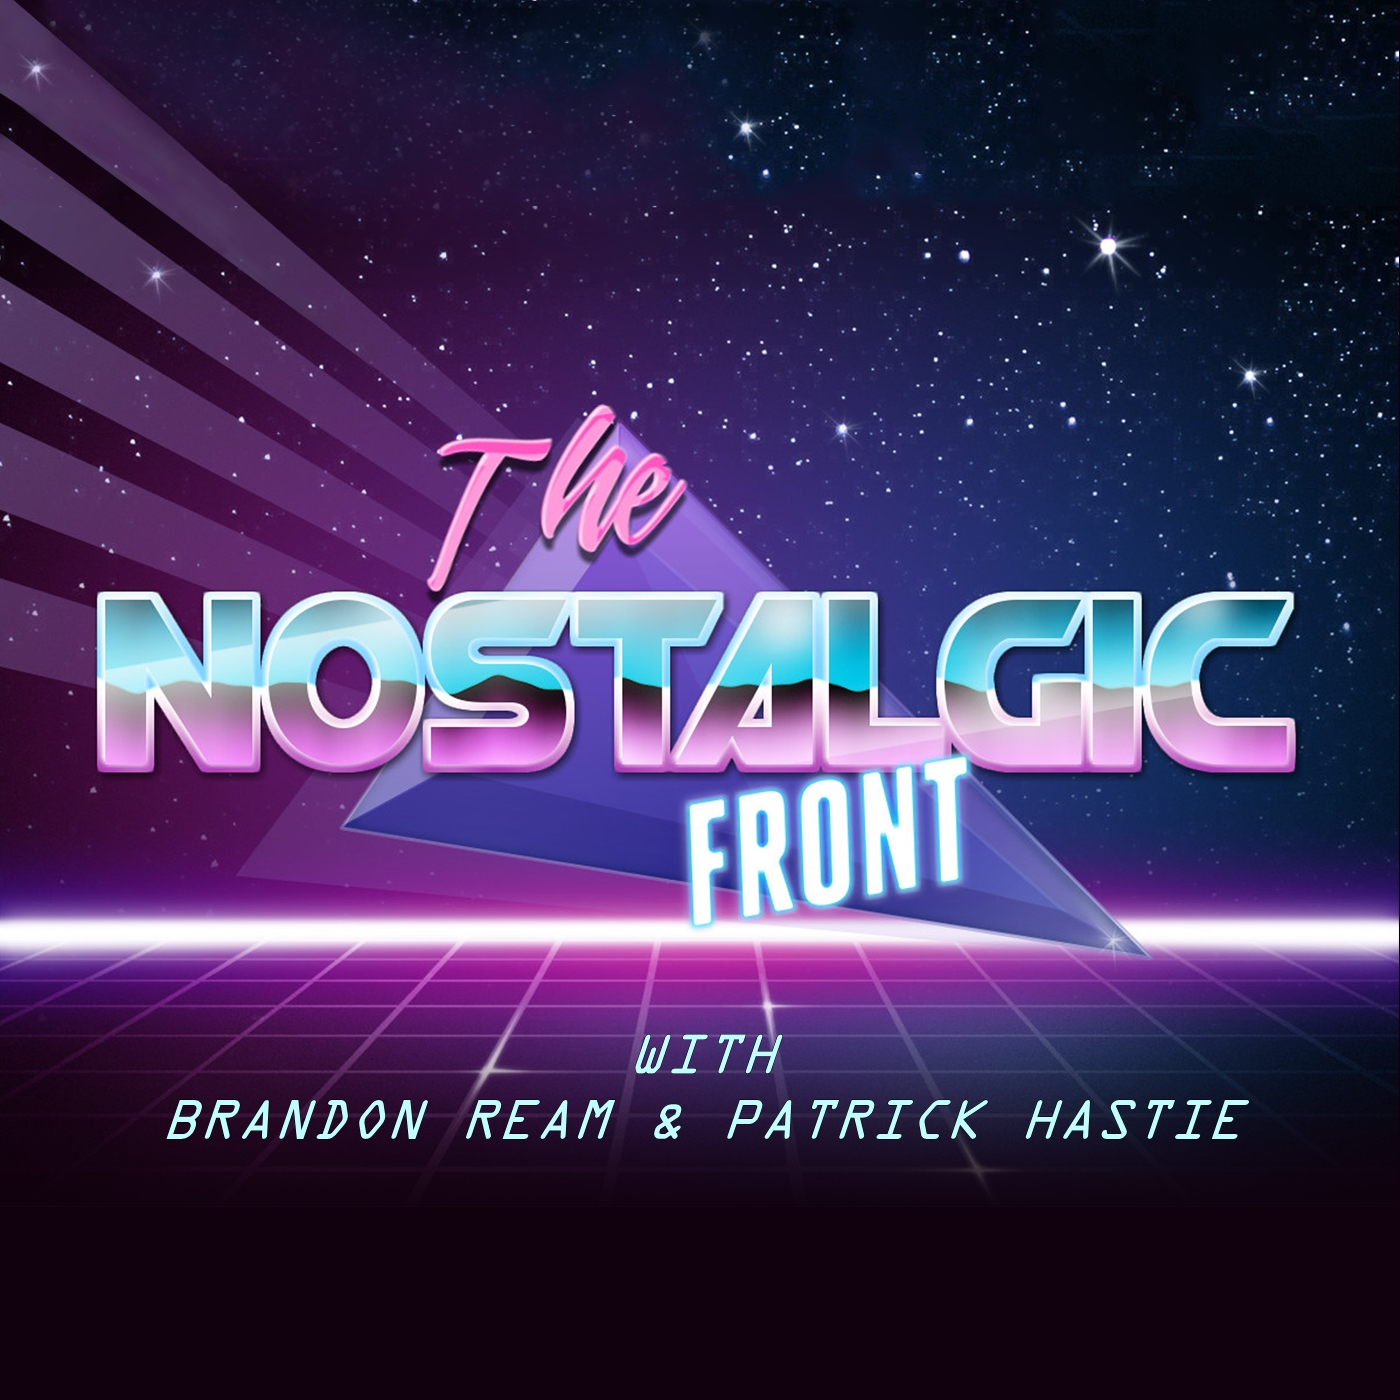 The NostalgicFront - ITS GREAT.